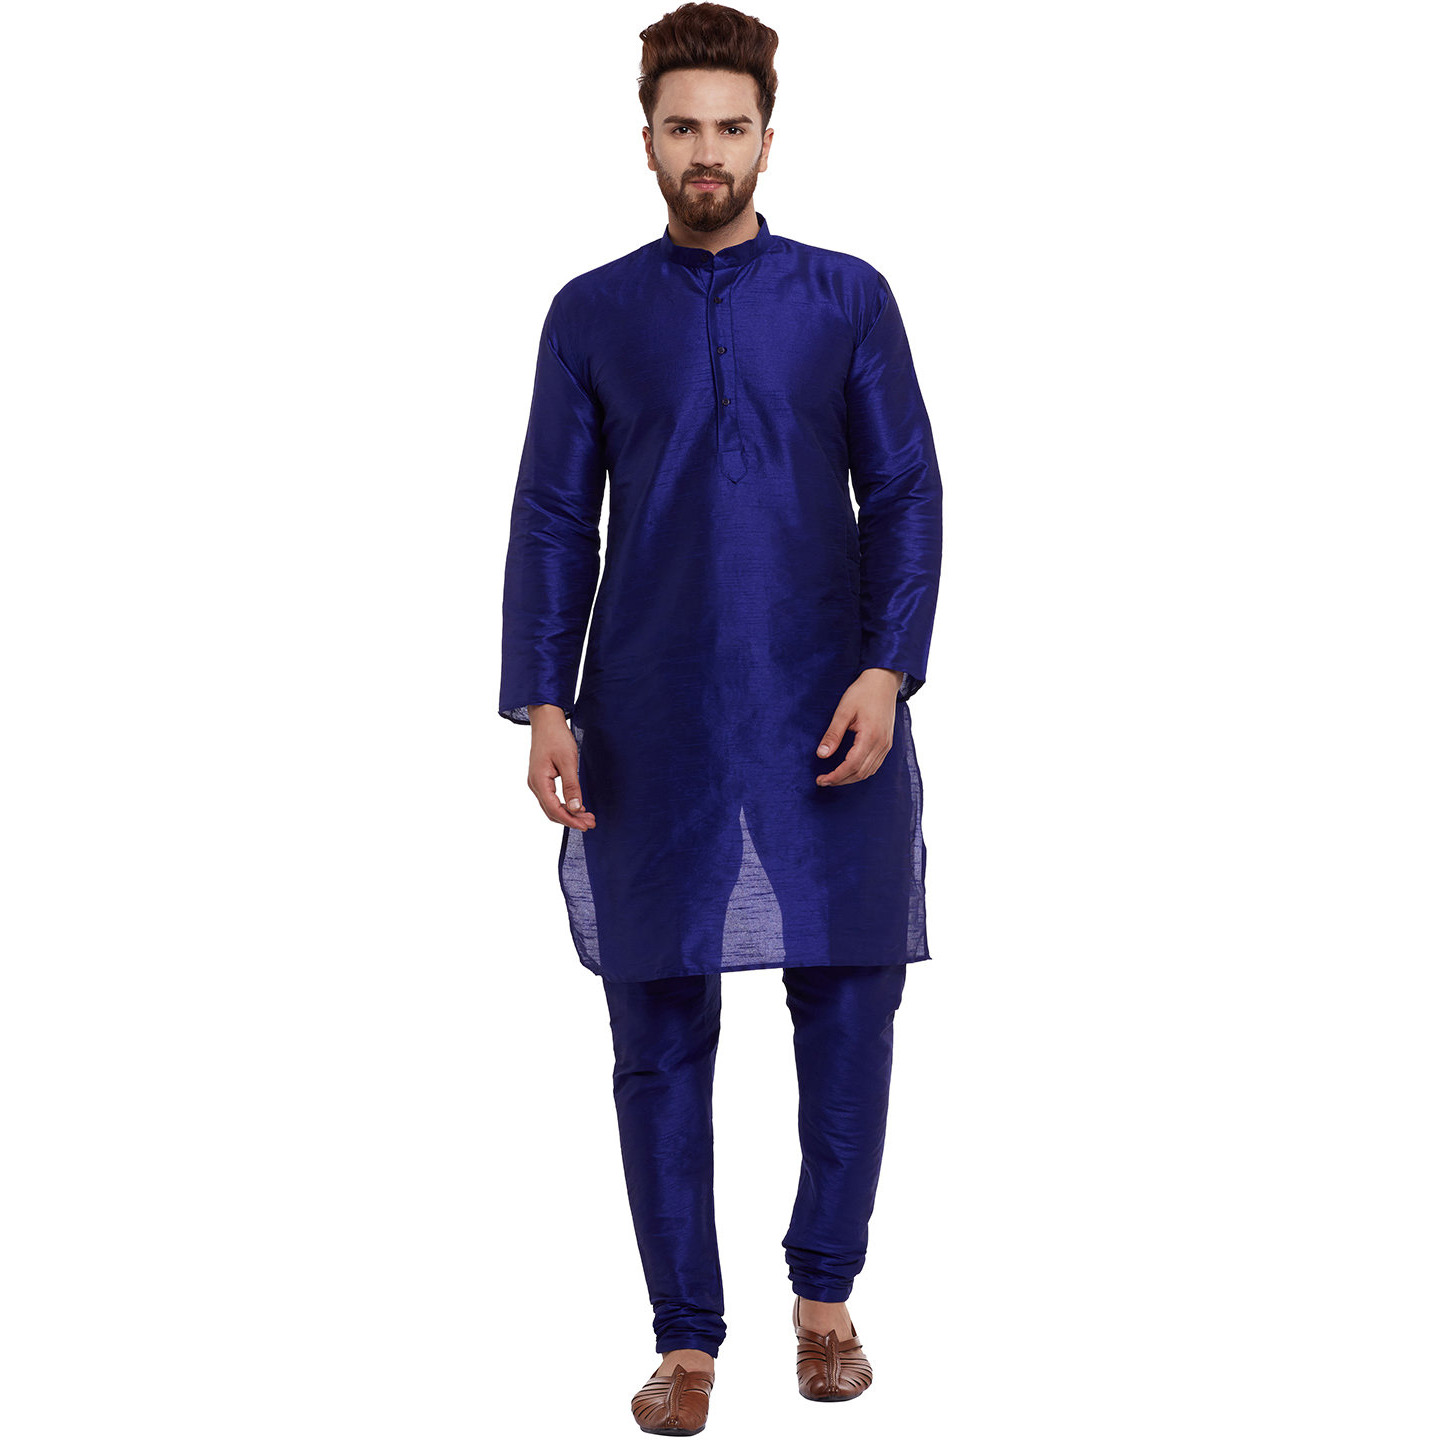 Sojanya (Since 1958)Mens Classic Dupion Silk Royal blue Solid Designer Kurta Churidaar Set Long Sleeve Ban collar Regular Fit